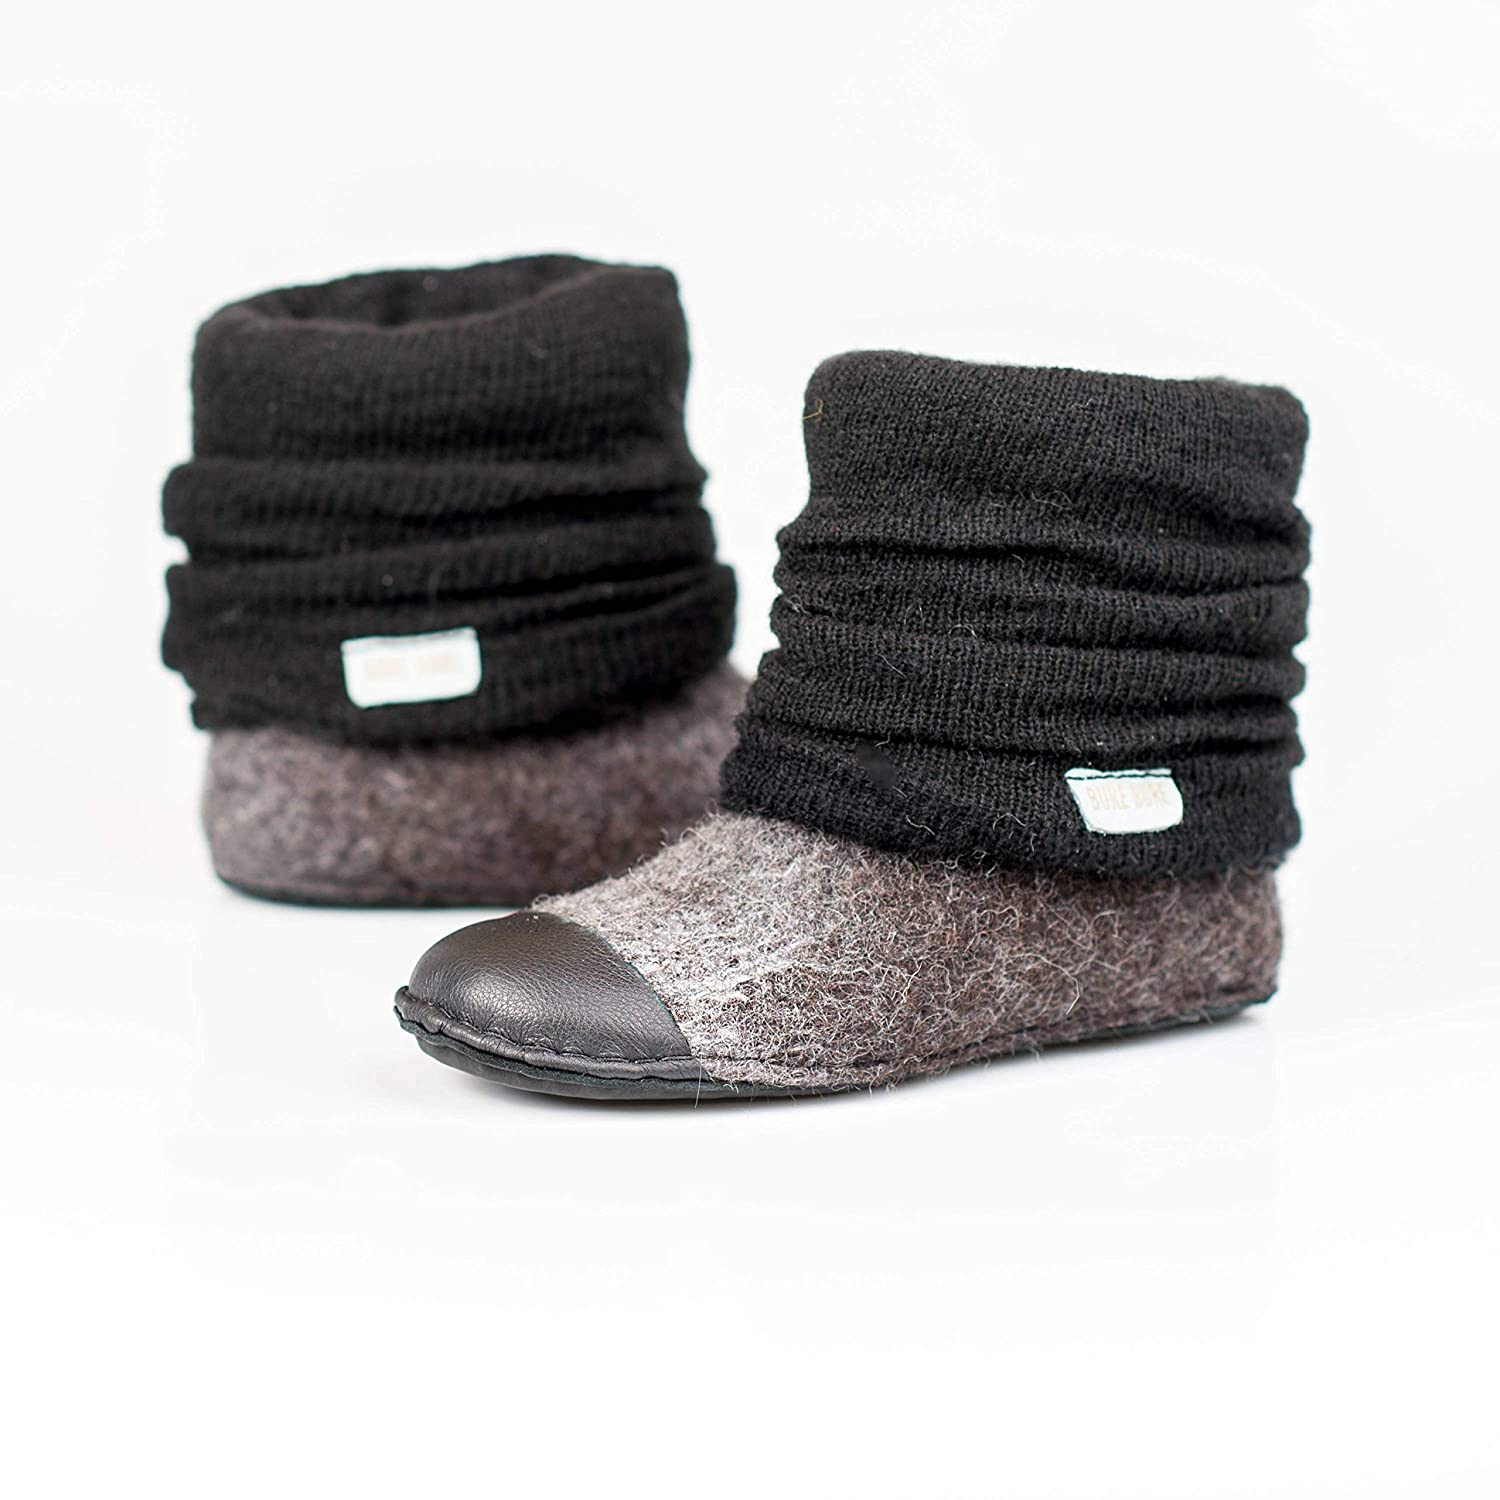 Gray to black ombre felted wool ankle boots for women with natural edge leather toe caps, knitted leg warmers